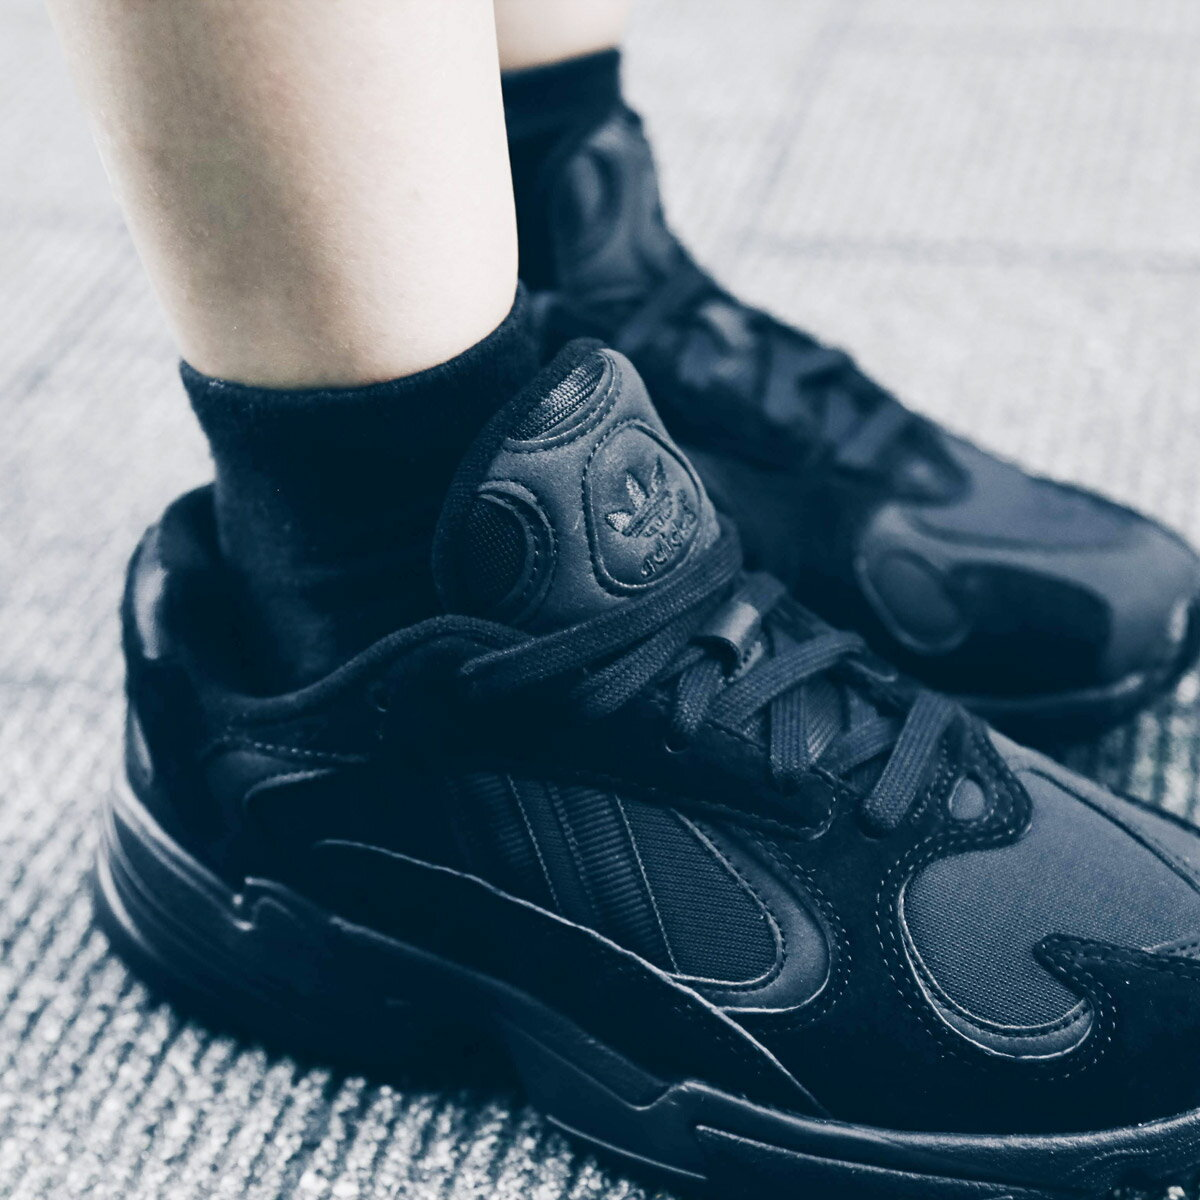 adidas Originals YUNG-1 (アディダス オリジナルス ヤング 1) CORE BLACK/CORE BLACK/CARBON18FW-I